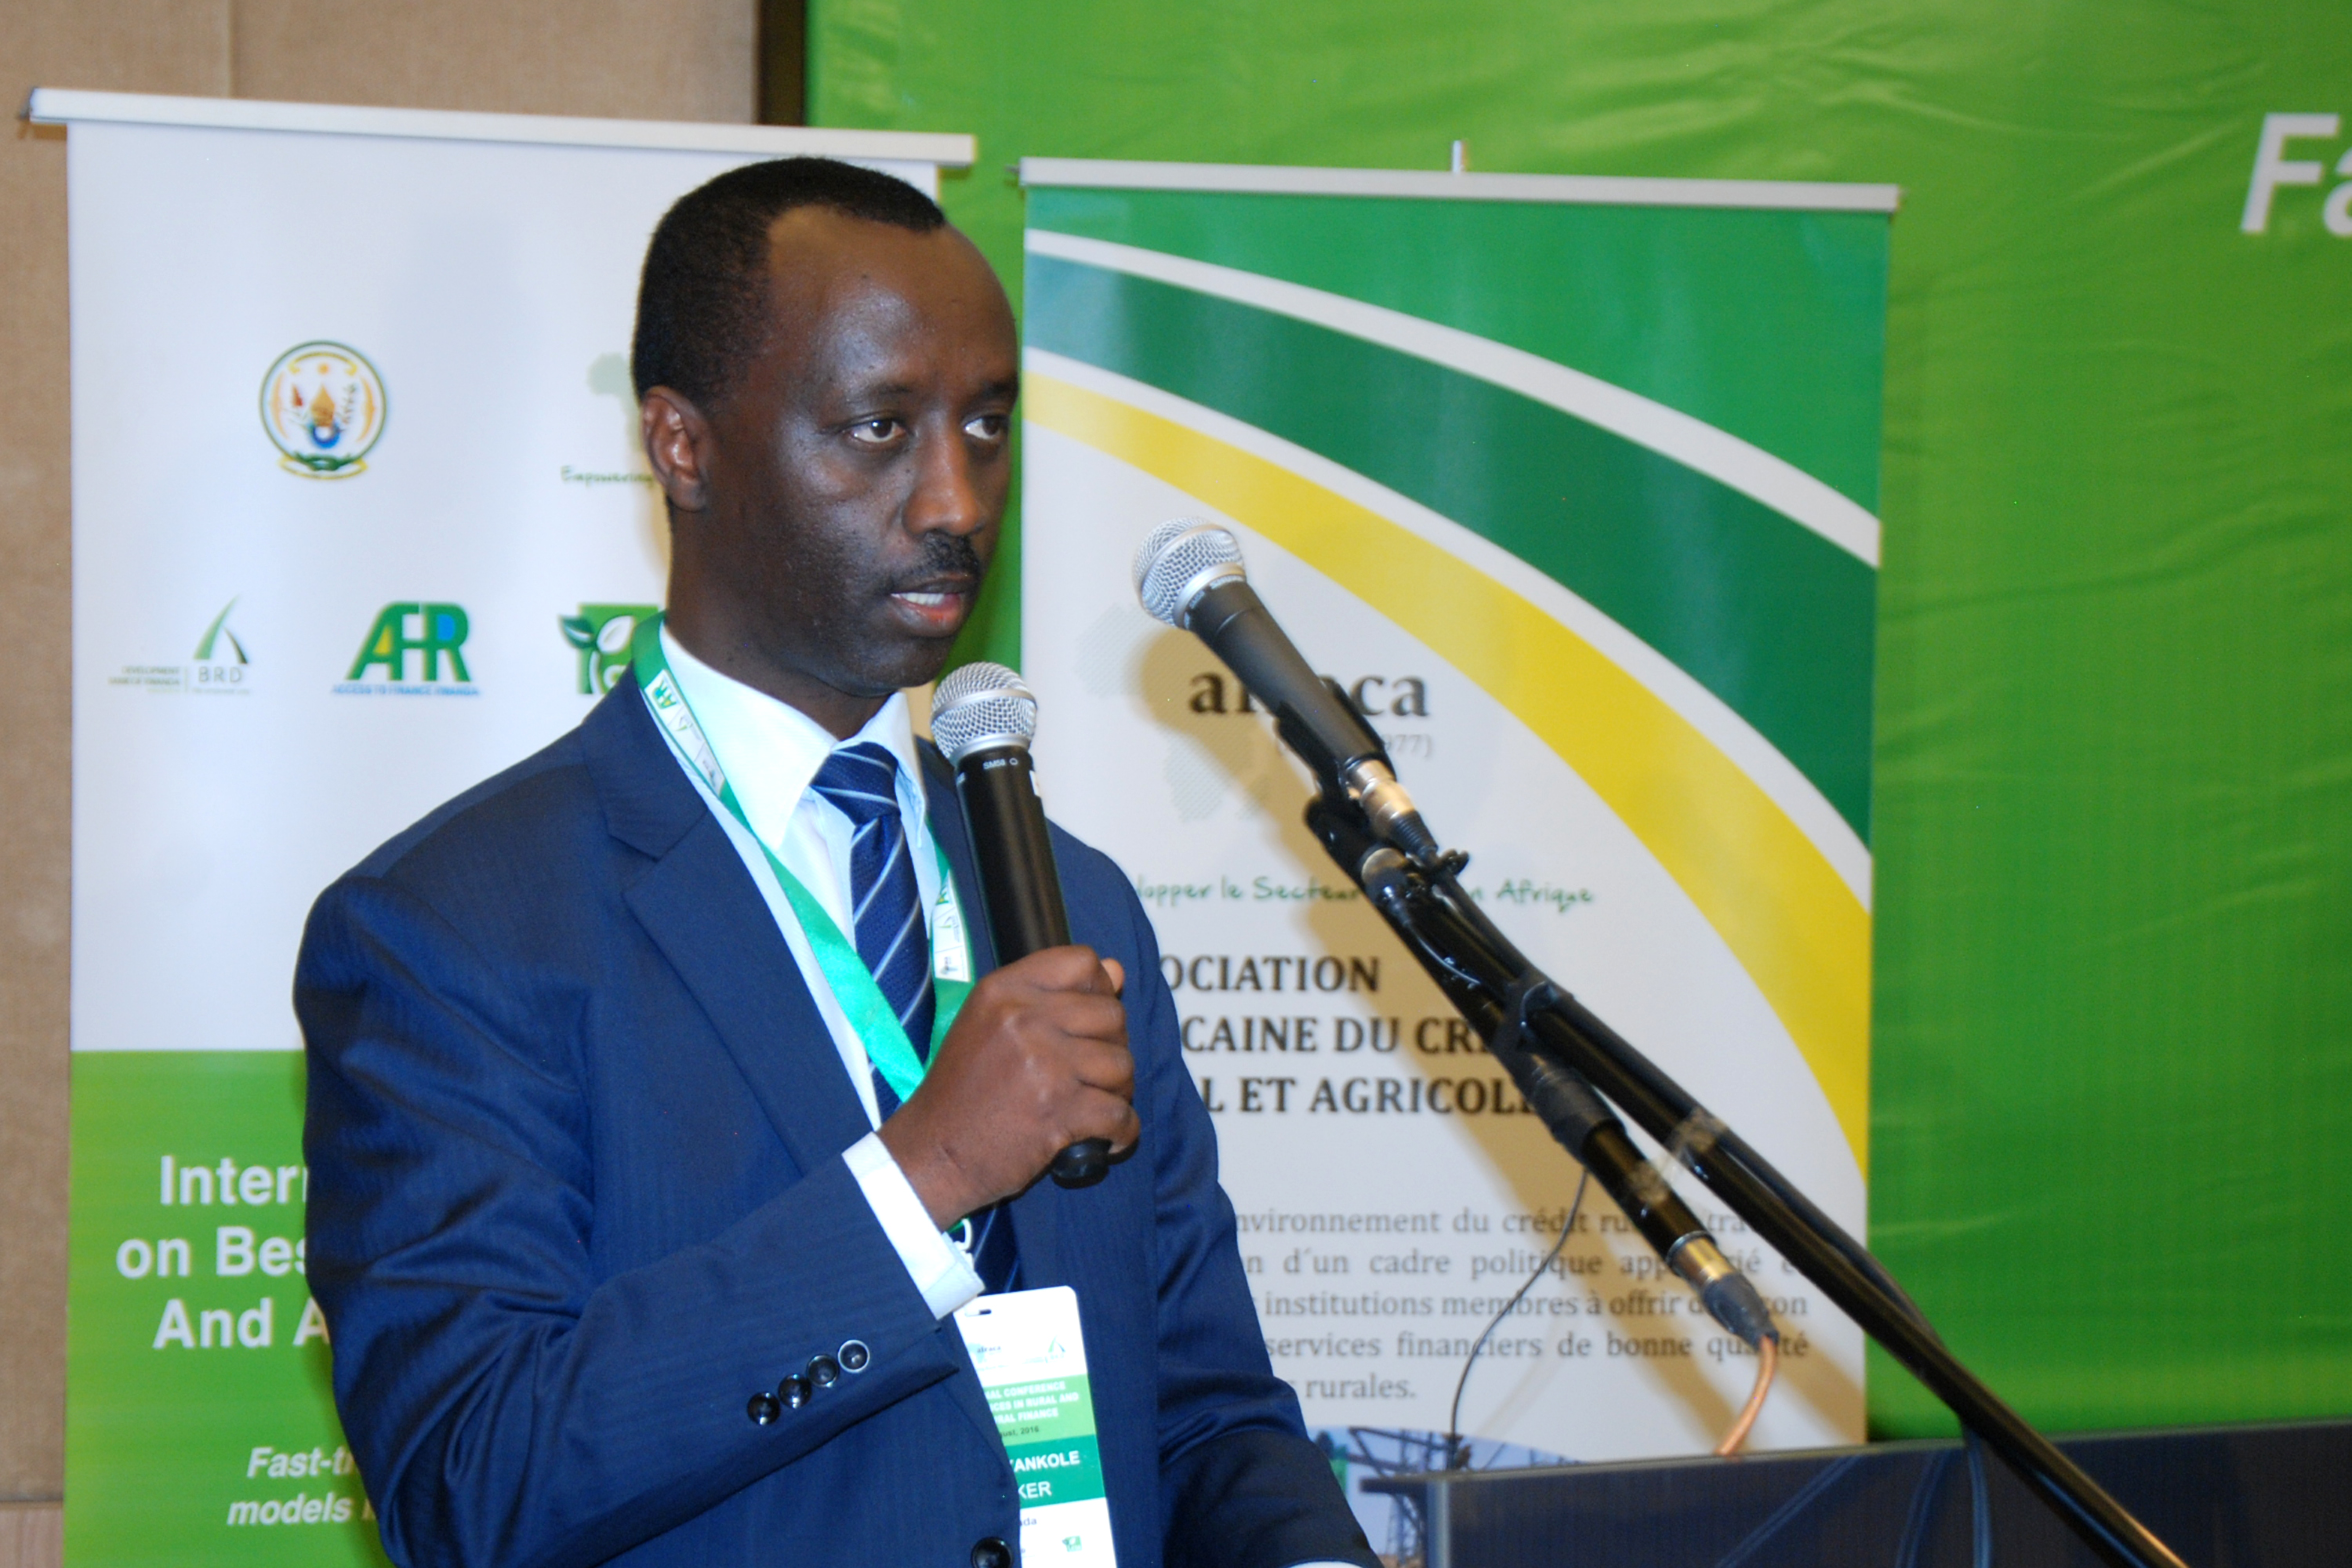 BRD's Kanyankole makes his key note opening speech this morning at the AFRACA conference